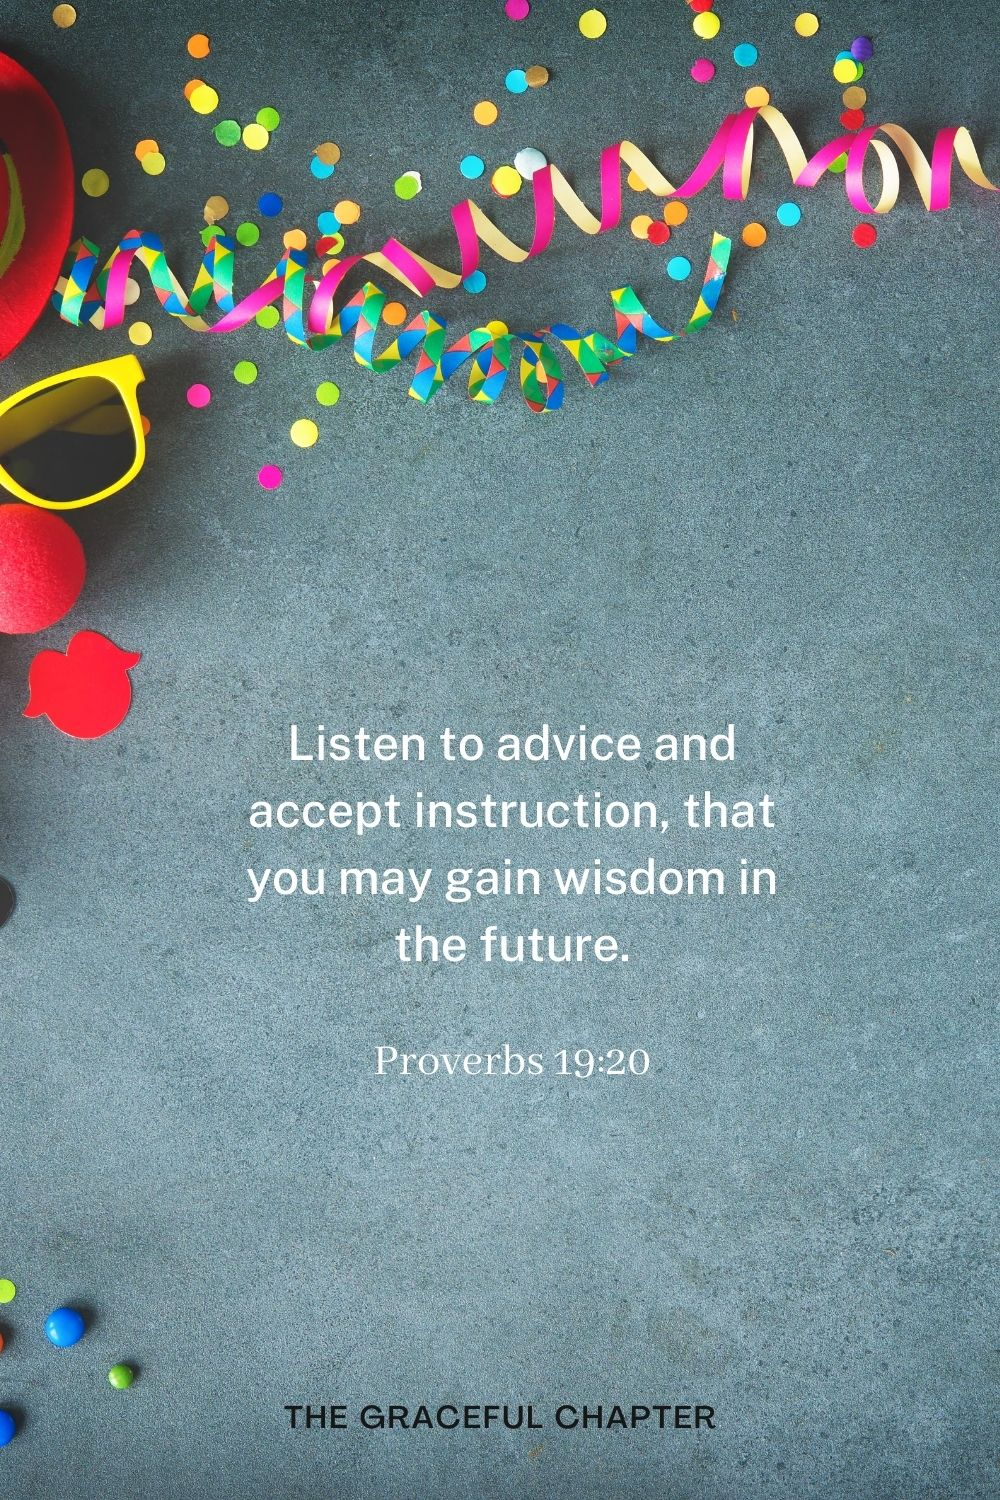 Listen to advice and accept instruction, that you may gain wisdom in the future. Proverbs 19:20